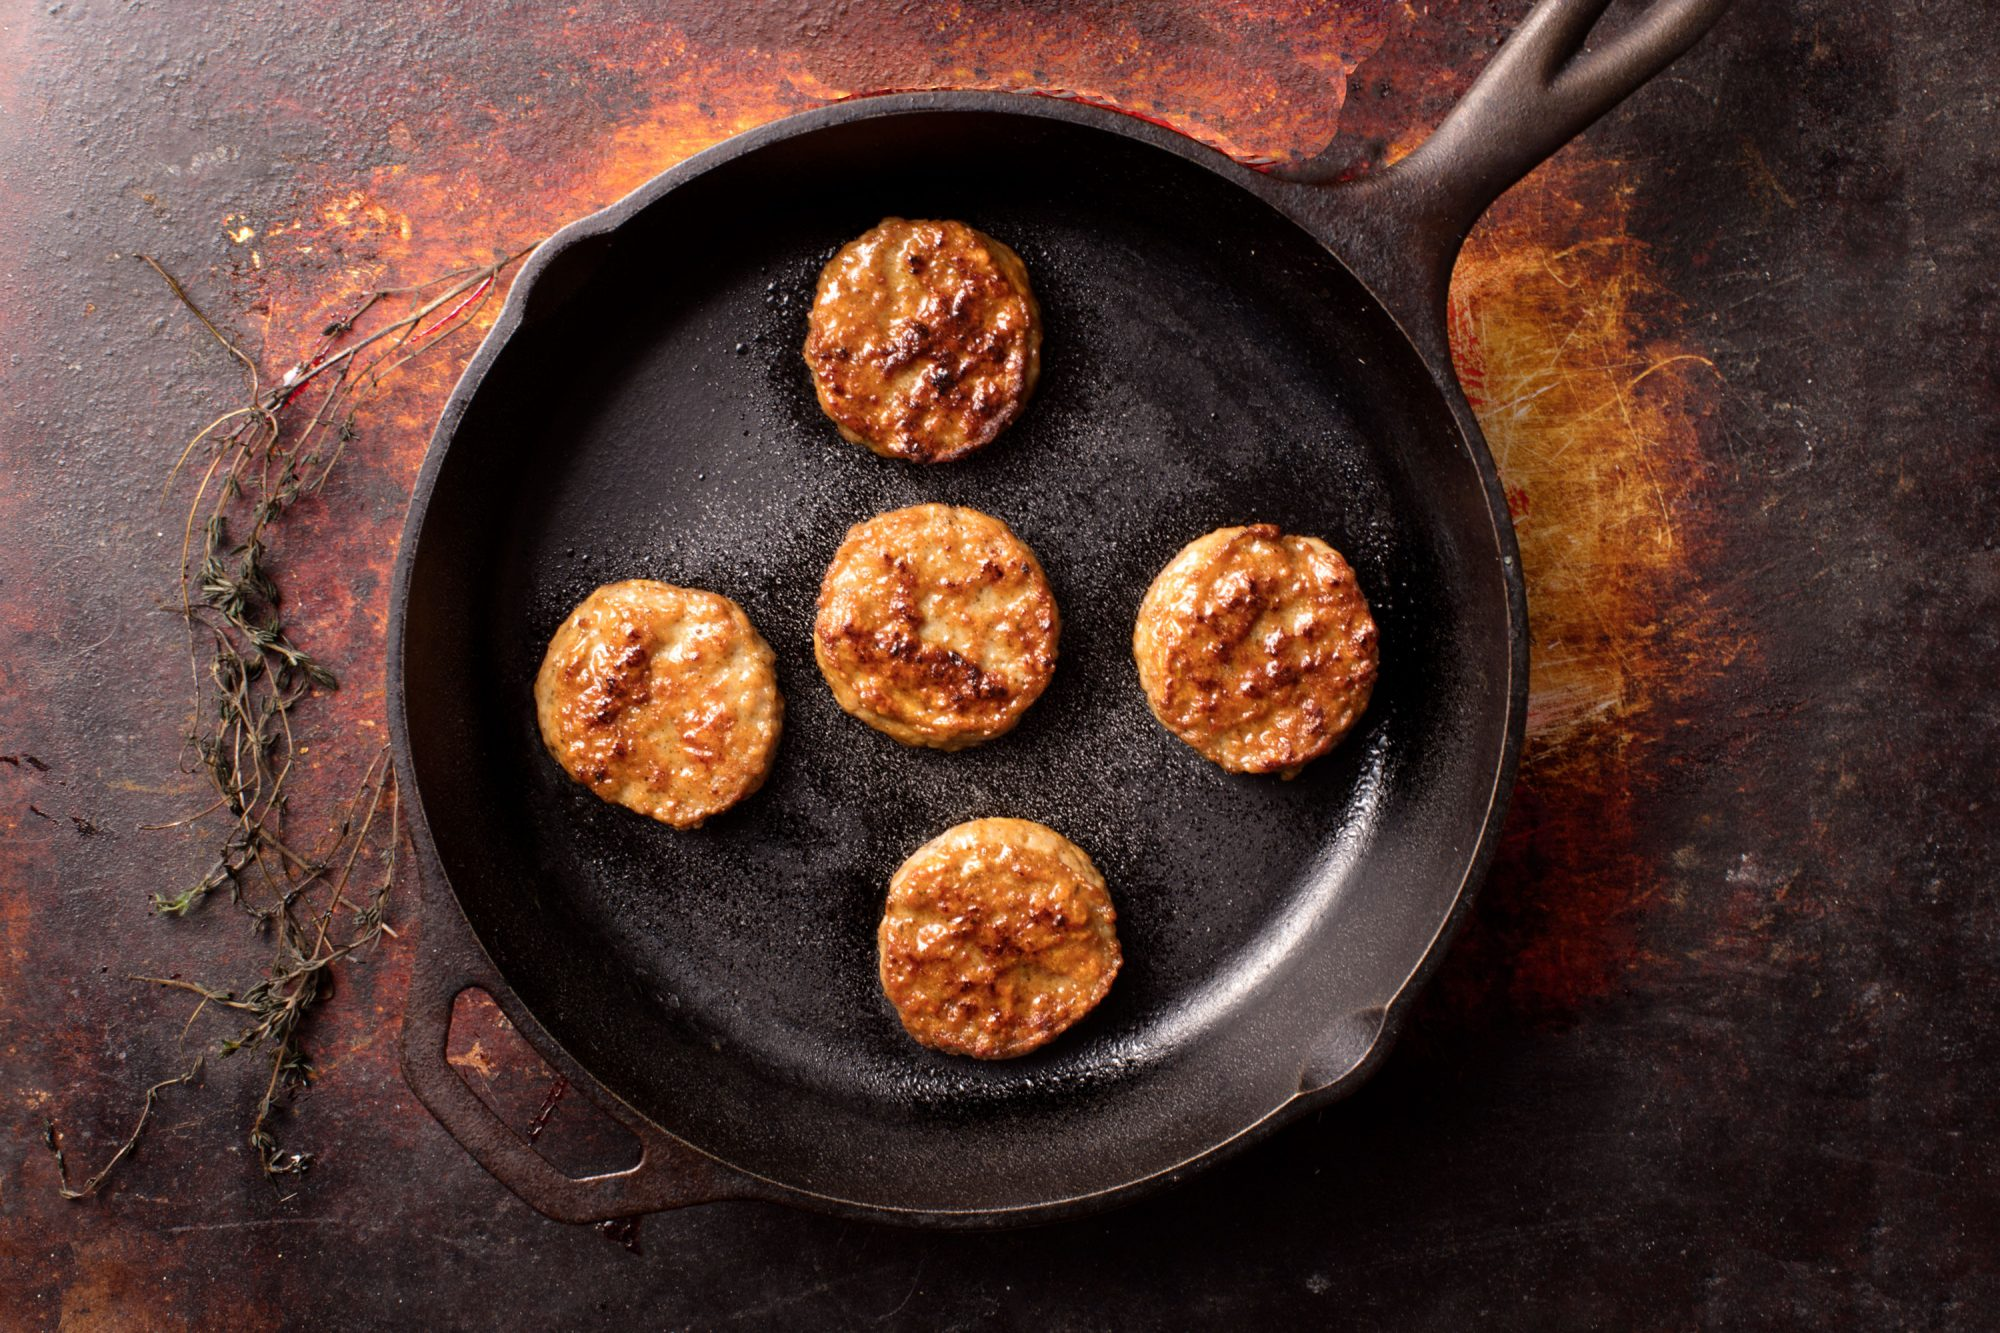 Sausage Patties in Skillet